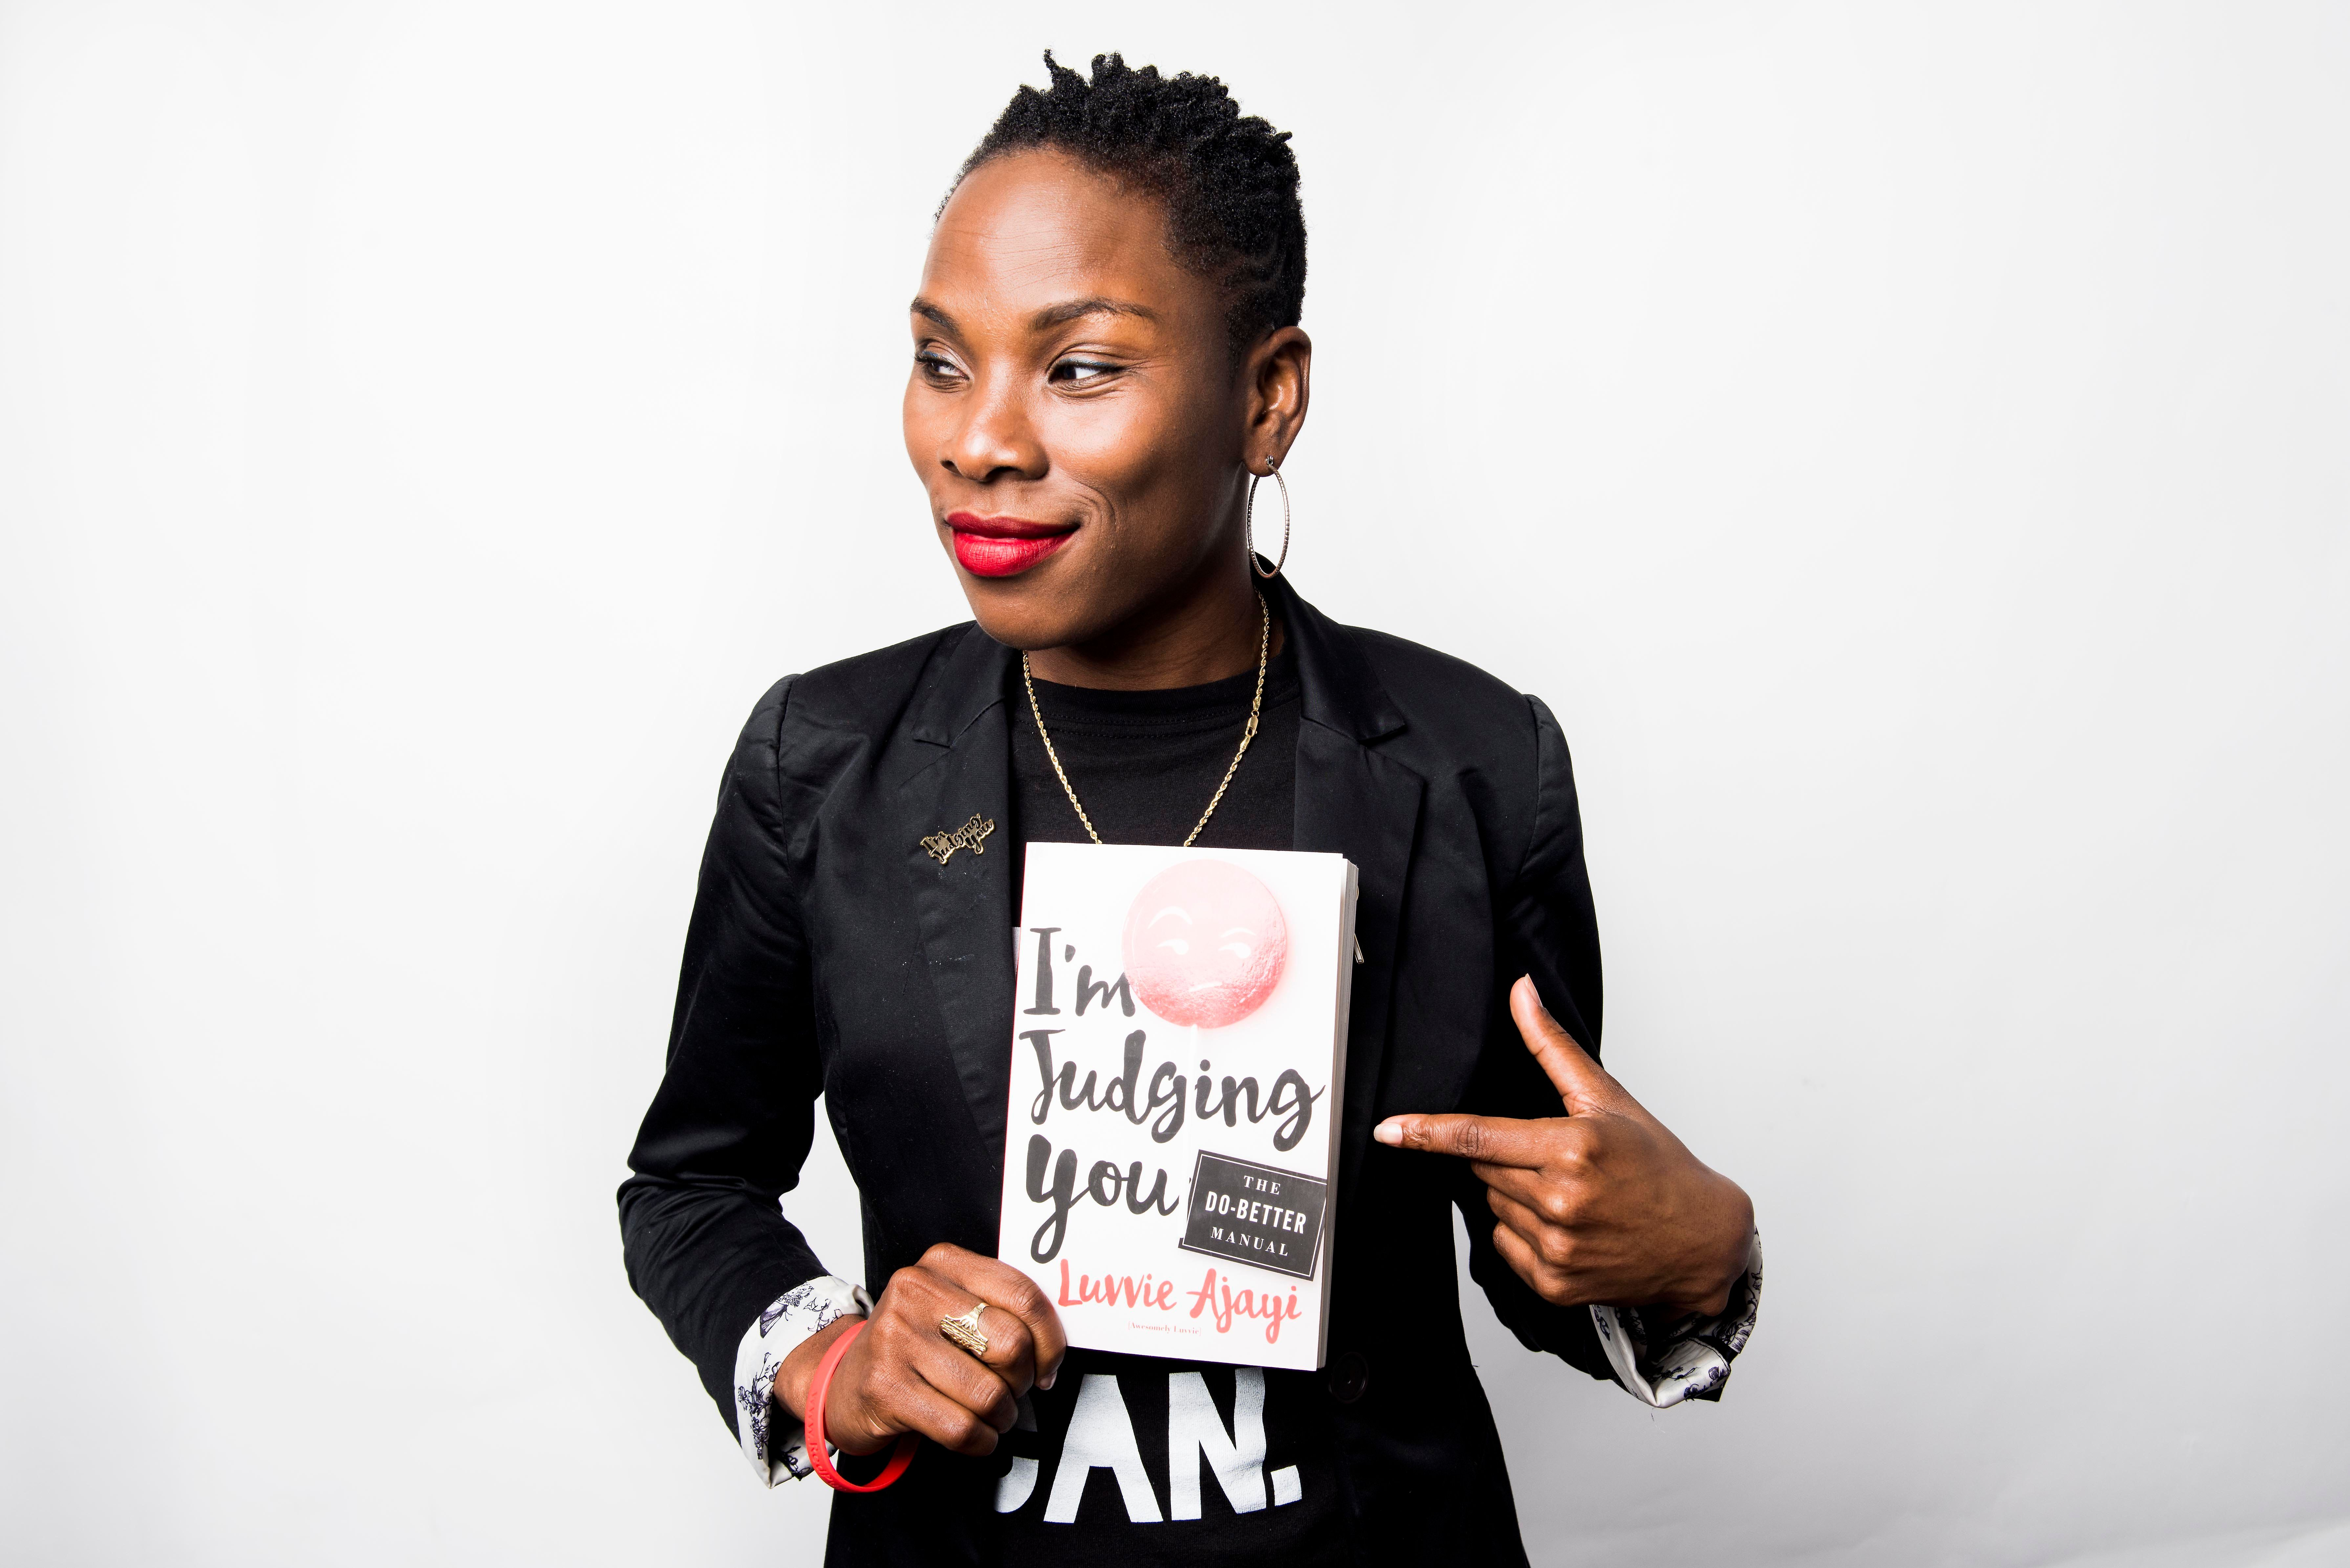 NEW YORK, NY - SEPTEMBER 14:  Luvvie Ajayi poses for a portrait in New York on Wednesday Sep. 14, 2016. (Photo by Damon Dahlen, Huffington Post) *** Local Caption ***